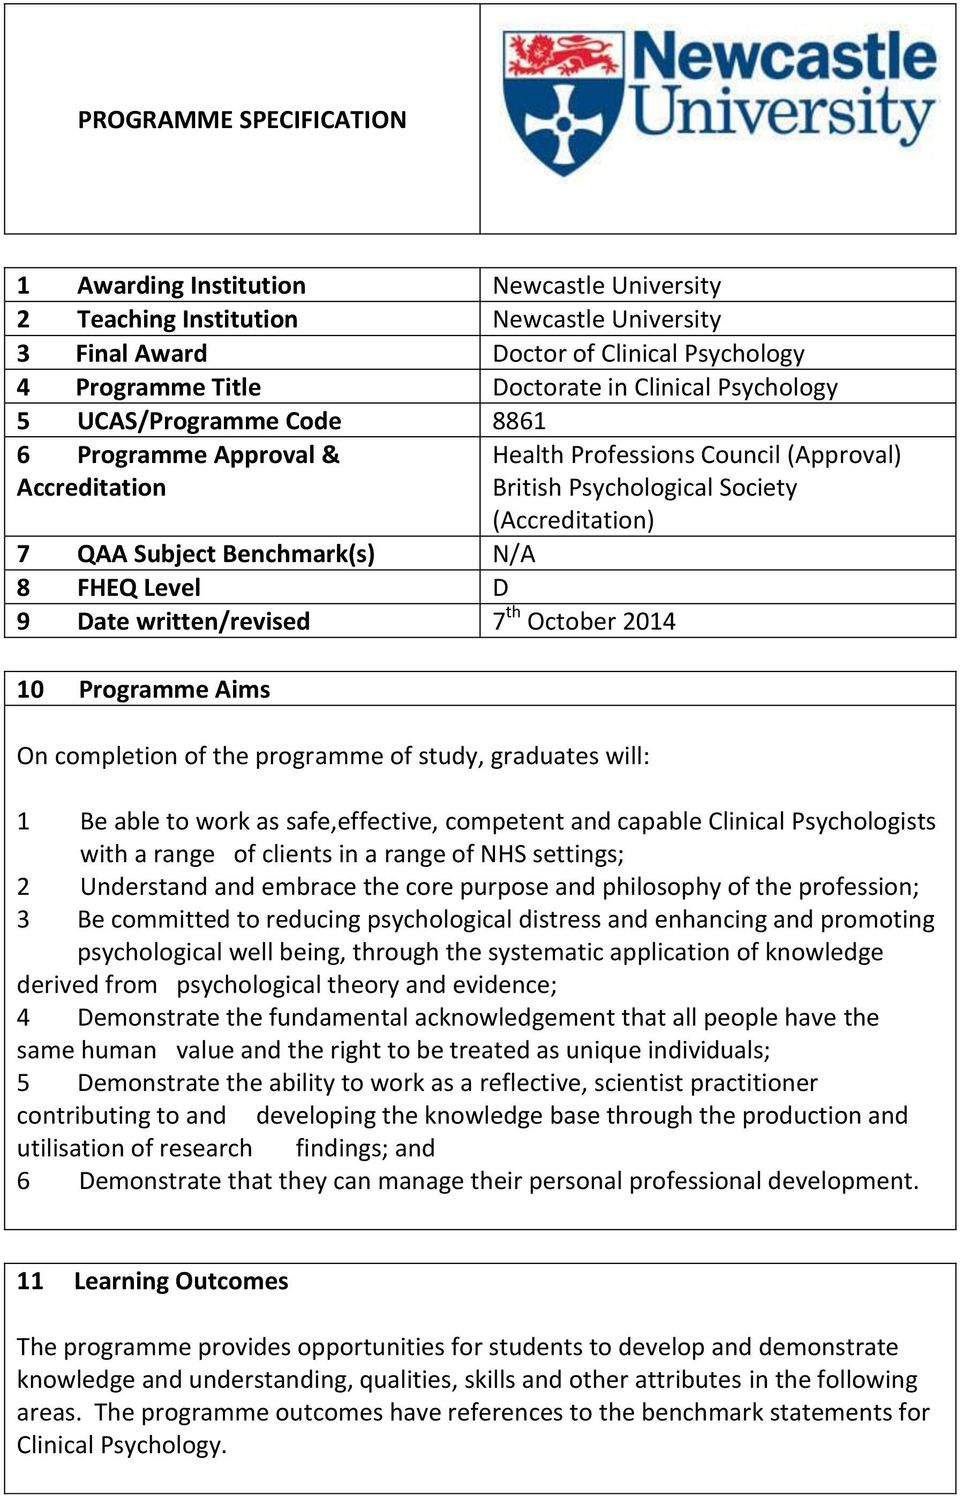 the programme of study, graduates will: Health Professions Council (Approval) British Psychological Society (Accreditation) 1 Be able to work as safe,effective, competent and capable Clinical